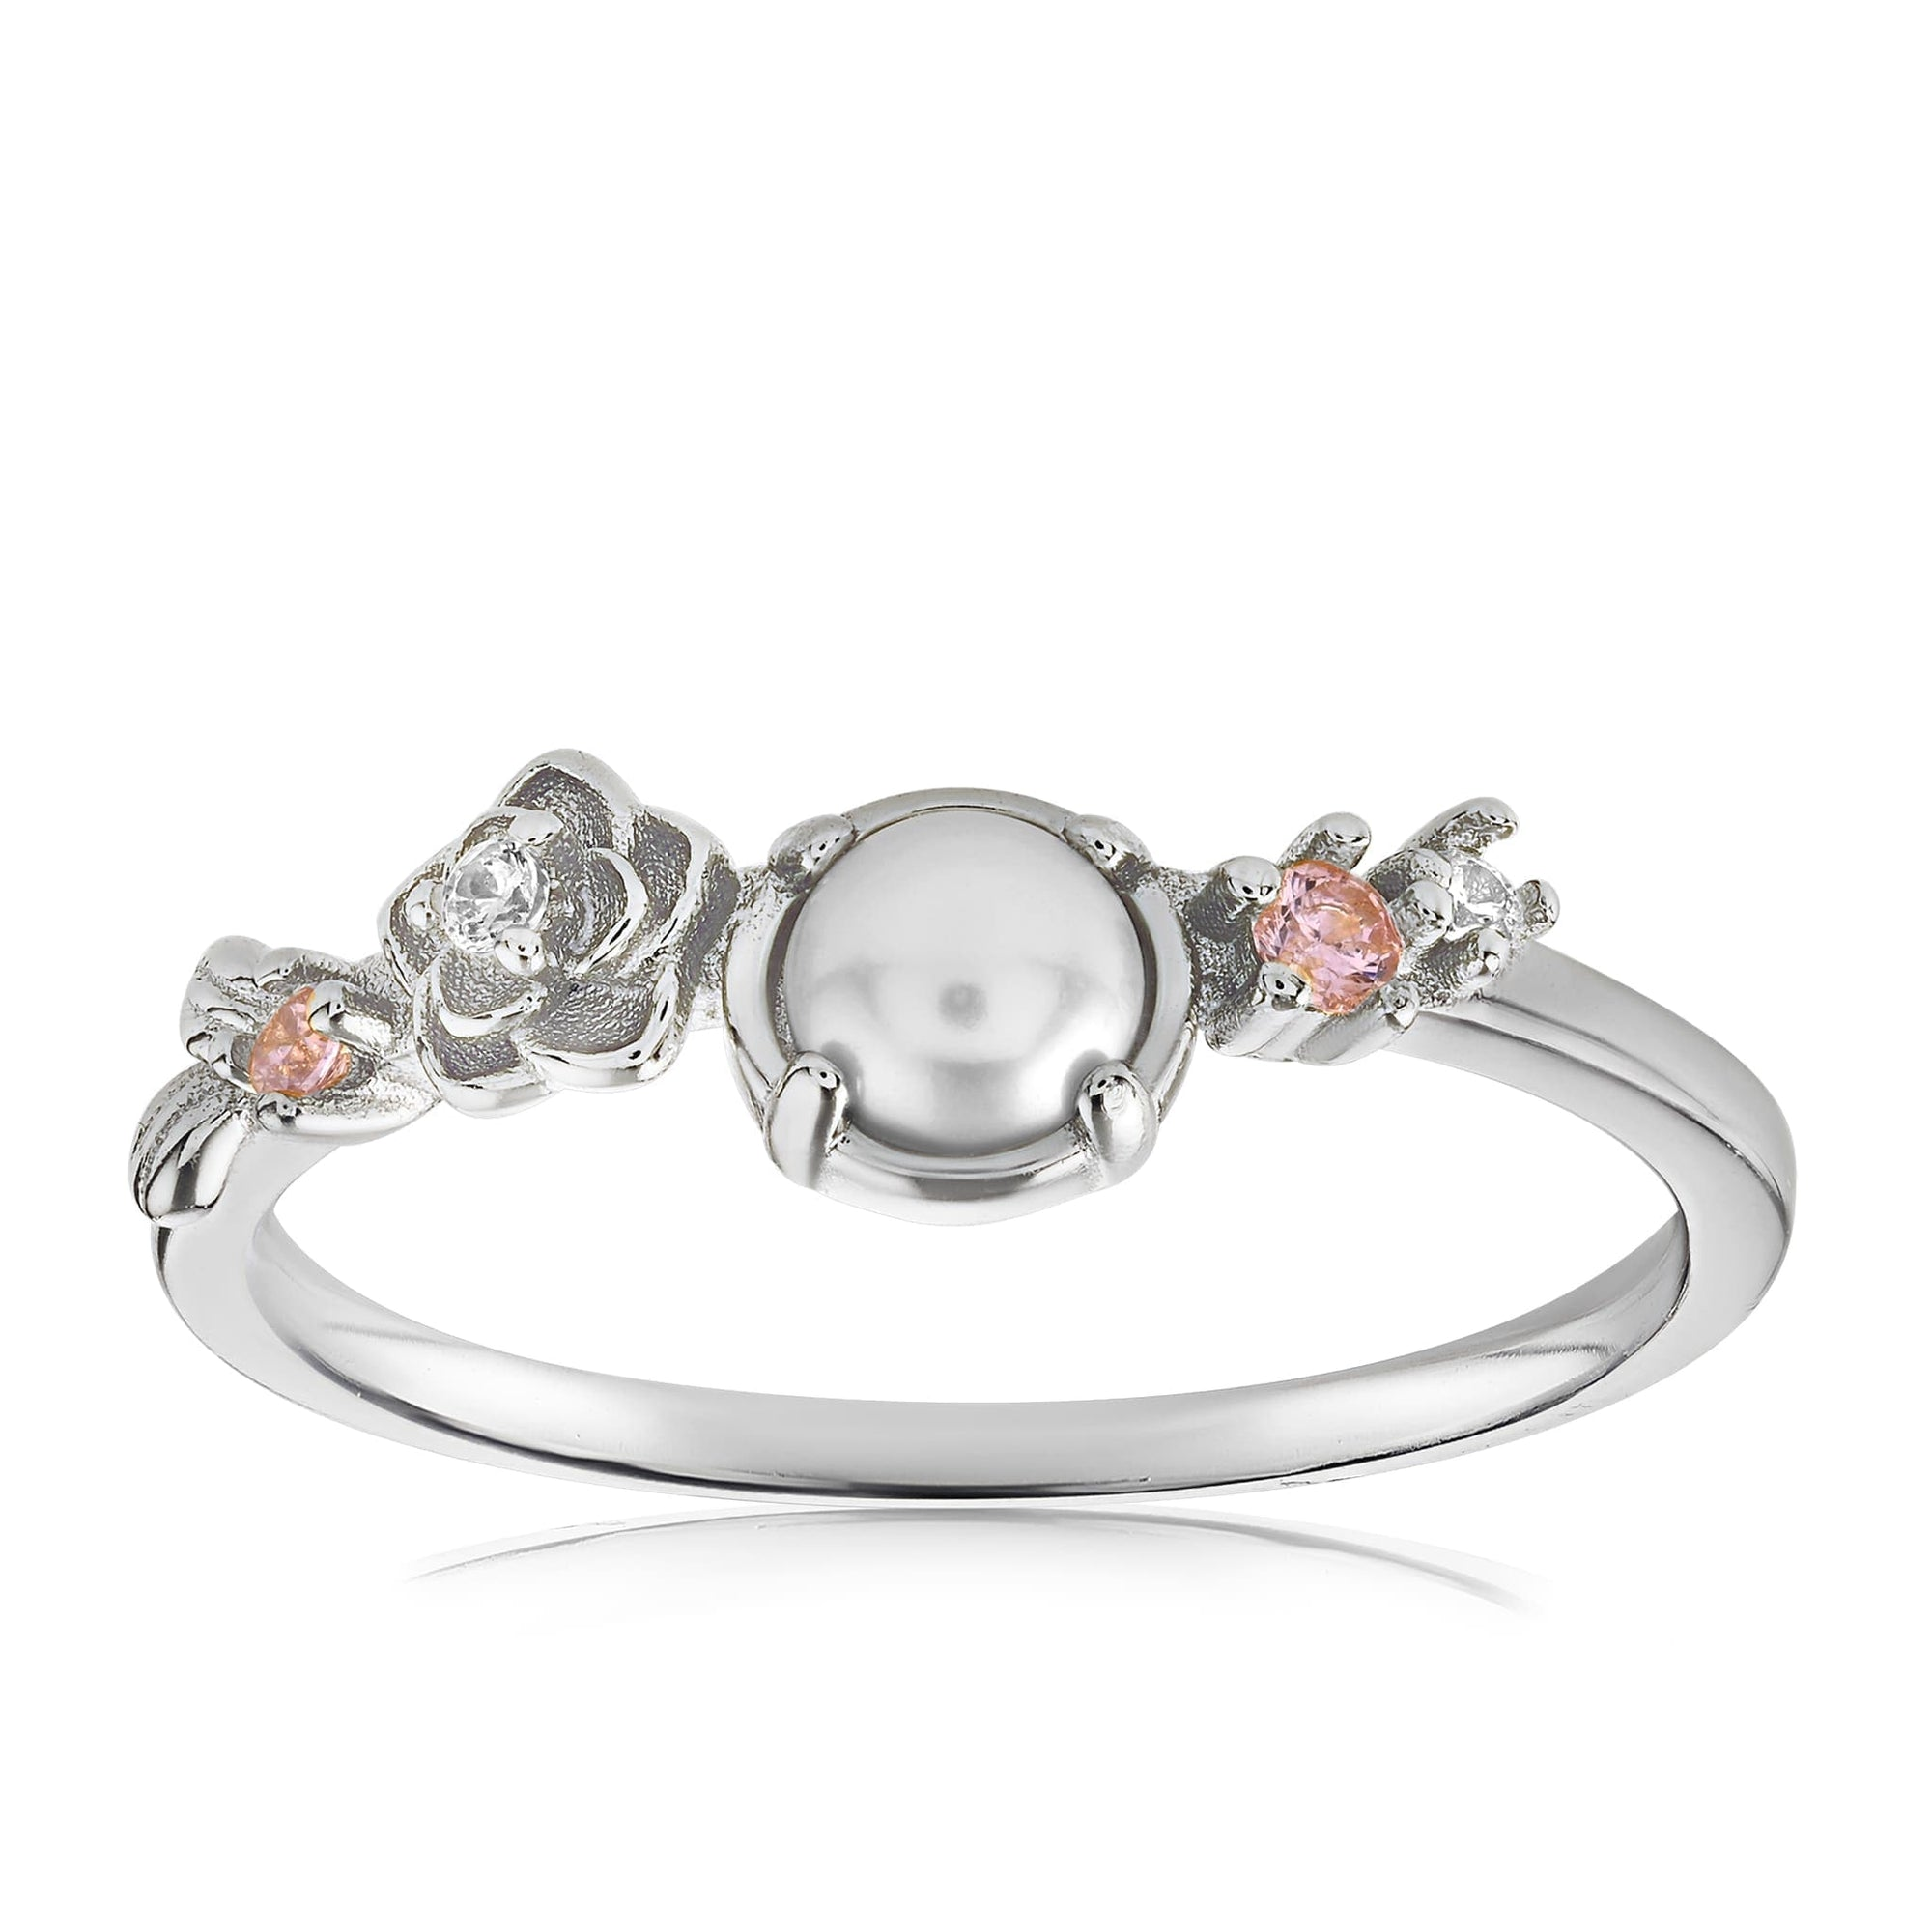 Grace Pearl Ring - Front View Facing Up - 925 Sterling Silver